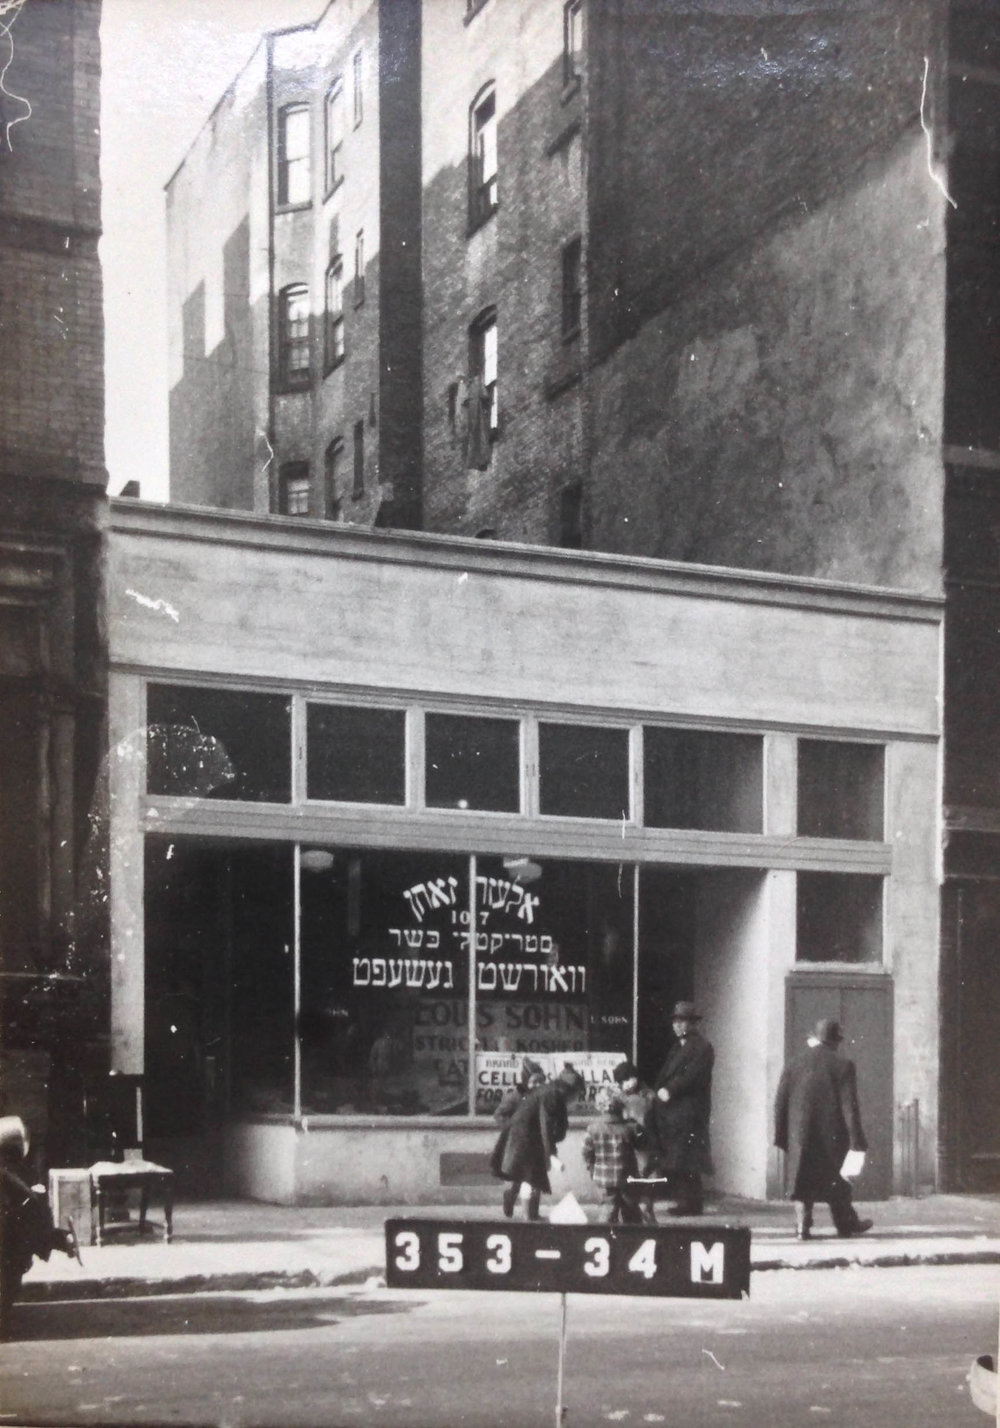 107 Norfolk Street, circa 1940. A view of Norfolk Street in the Lower East Side at a time when a lot of the residents were immigrant Jewish families from Eastern Europe. Beth Hamedrash Hagodol, one of the oldest Orthodox congregations in the United States, was just down the street. Department of Finance Collection, NYC Municipal Archives.